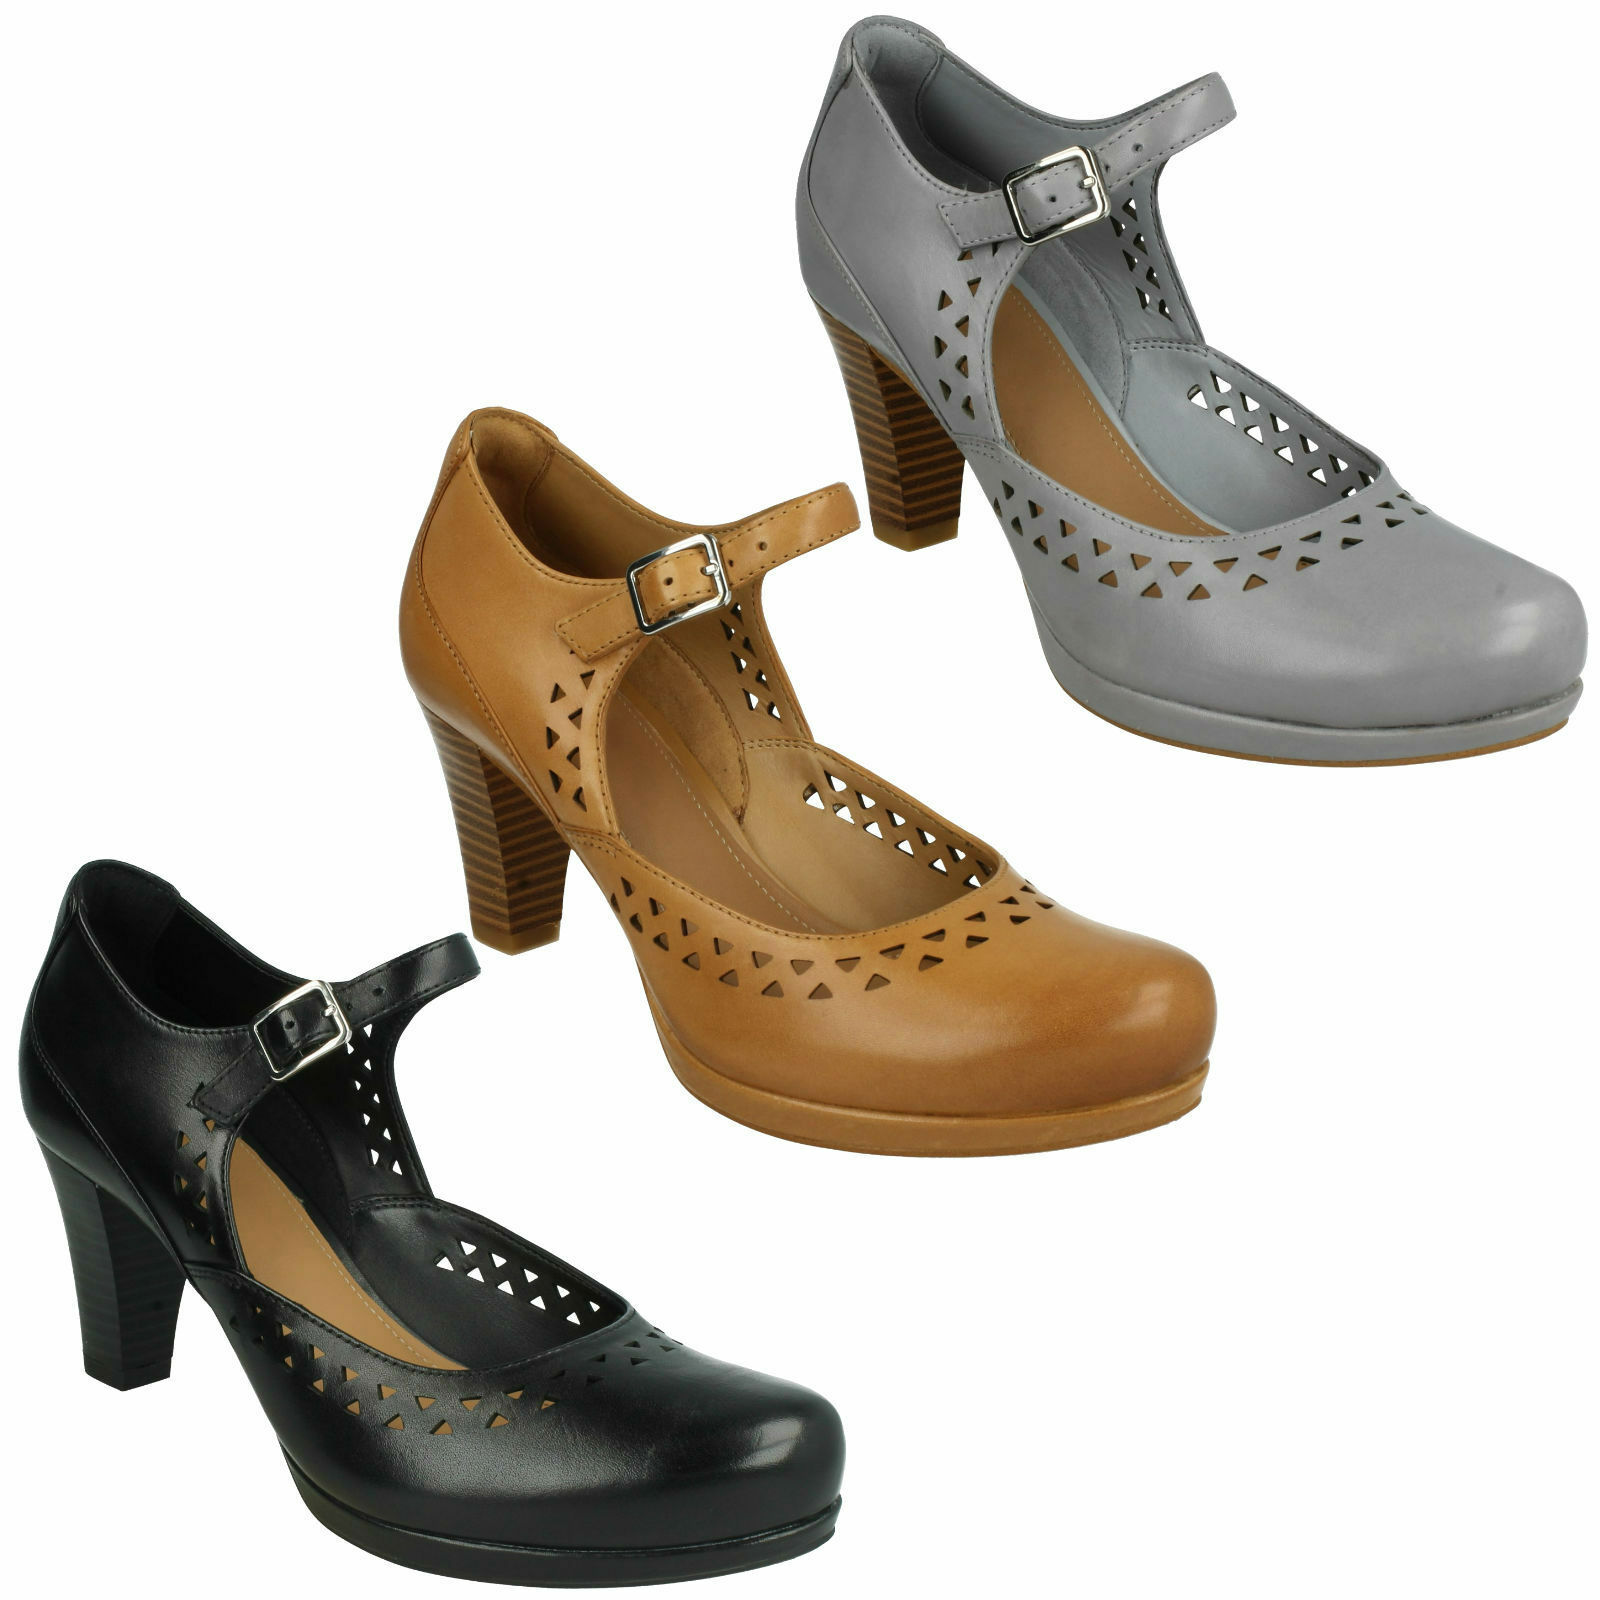 CHORUS CHIME LADIES CLARKS LEATHER BLOCK HEEL BUCKLE MARY JANE SMART COURT Schuhe